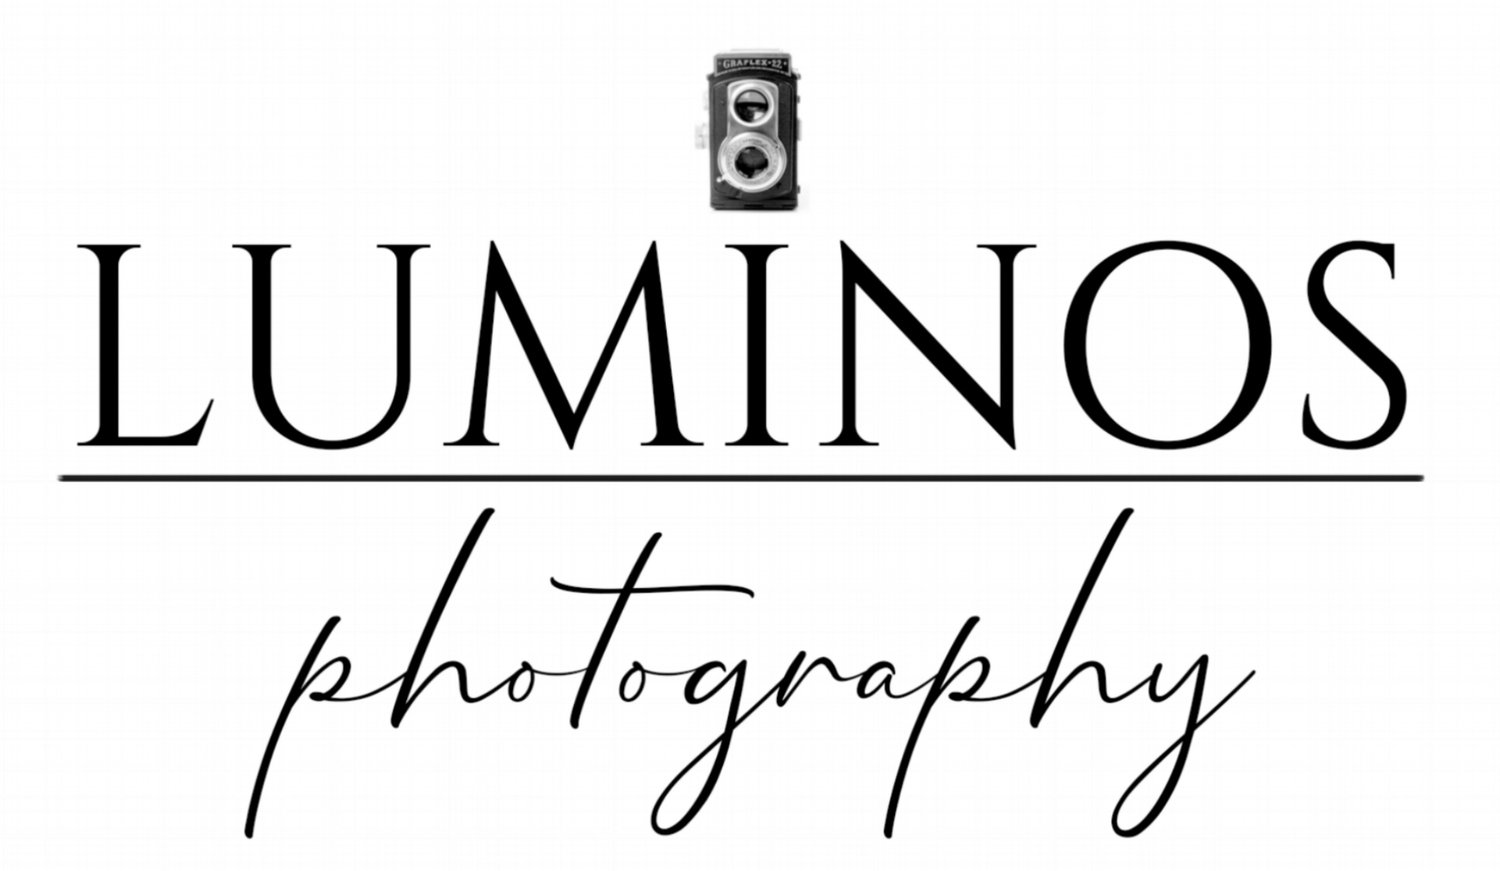 WWW.Luminos.Photography.com Most affodable and voted one of the best photographers in Utah. You own the Copyrights